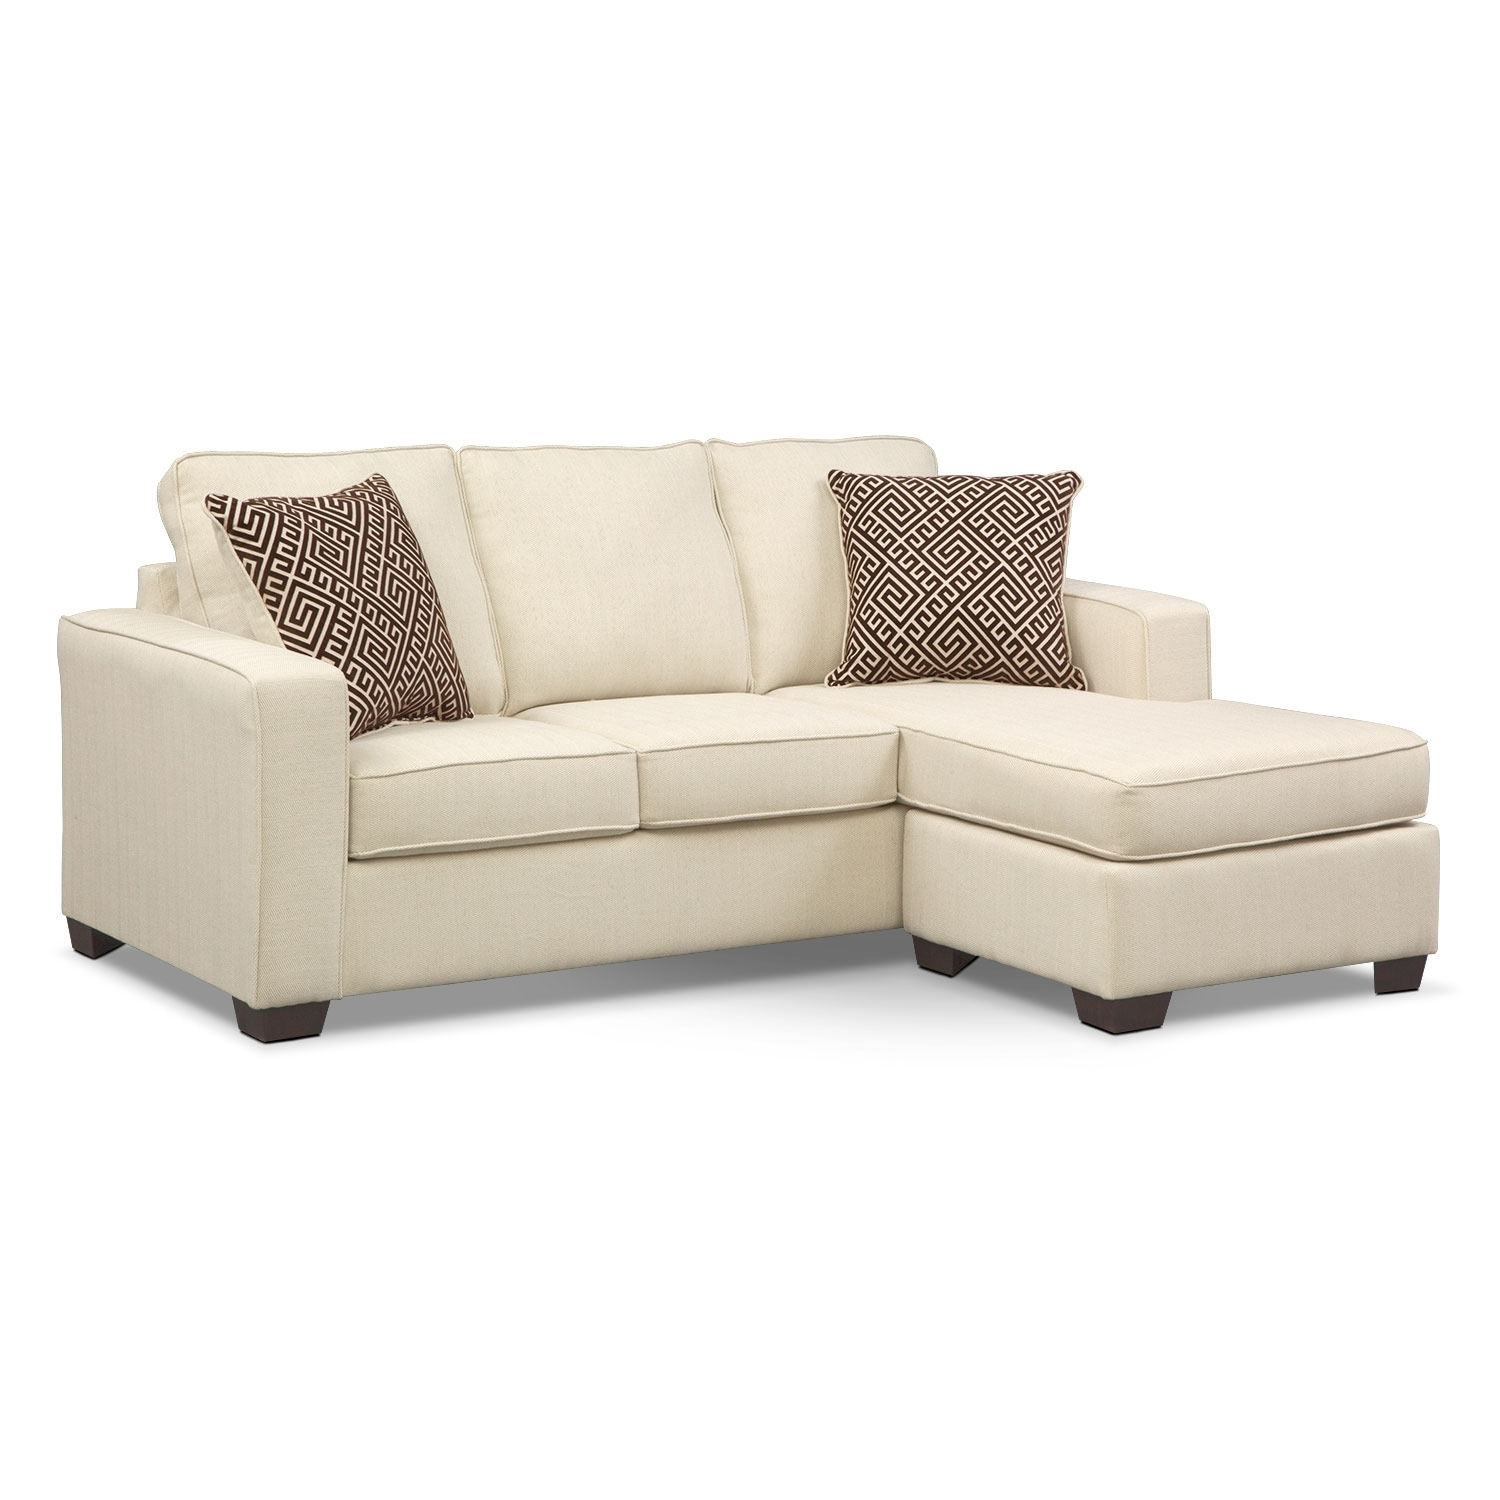 Etonnant Sterling Memory Foam Sleeper Sofa With Chaise   Beige By Factory Outlet